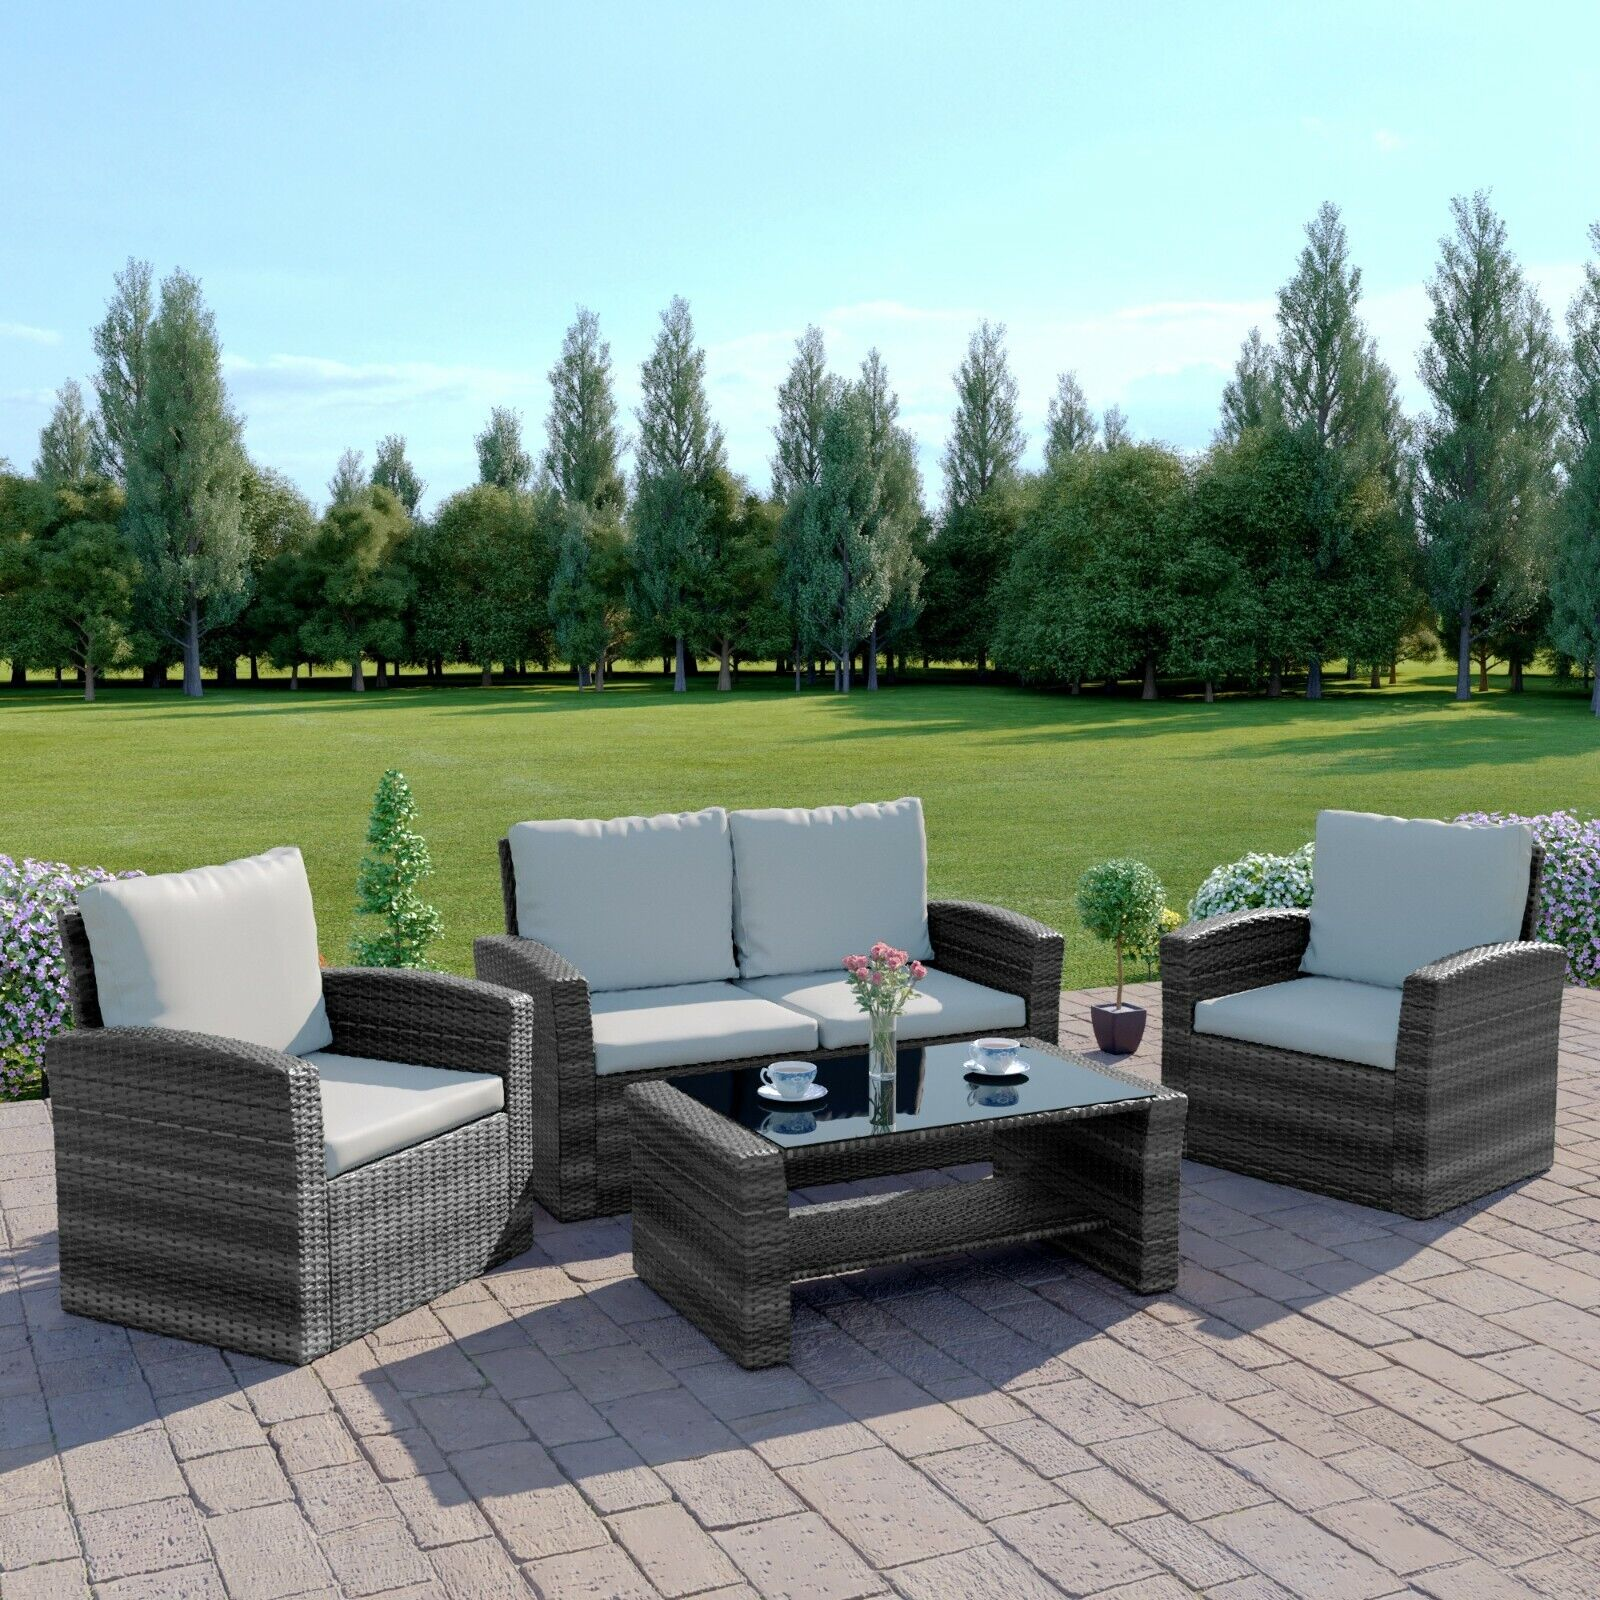 Garden Furniture - Rattan Garden Sofa Furniture Set Patio Conservatory 4 Seater Armchairs Table